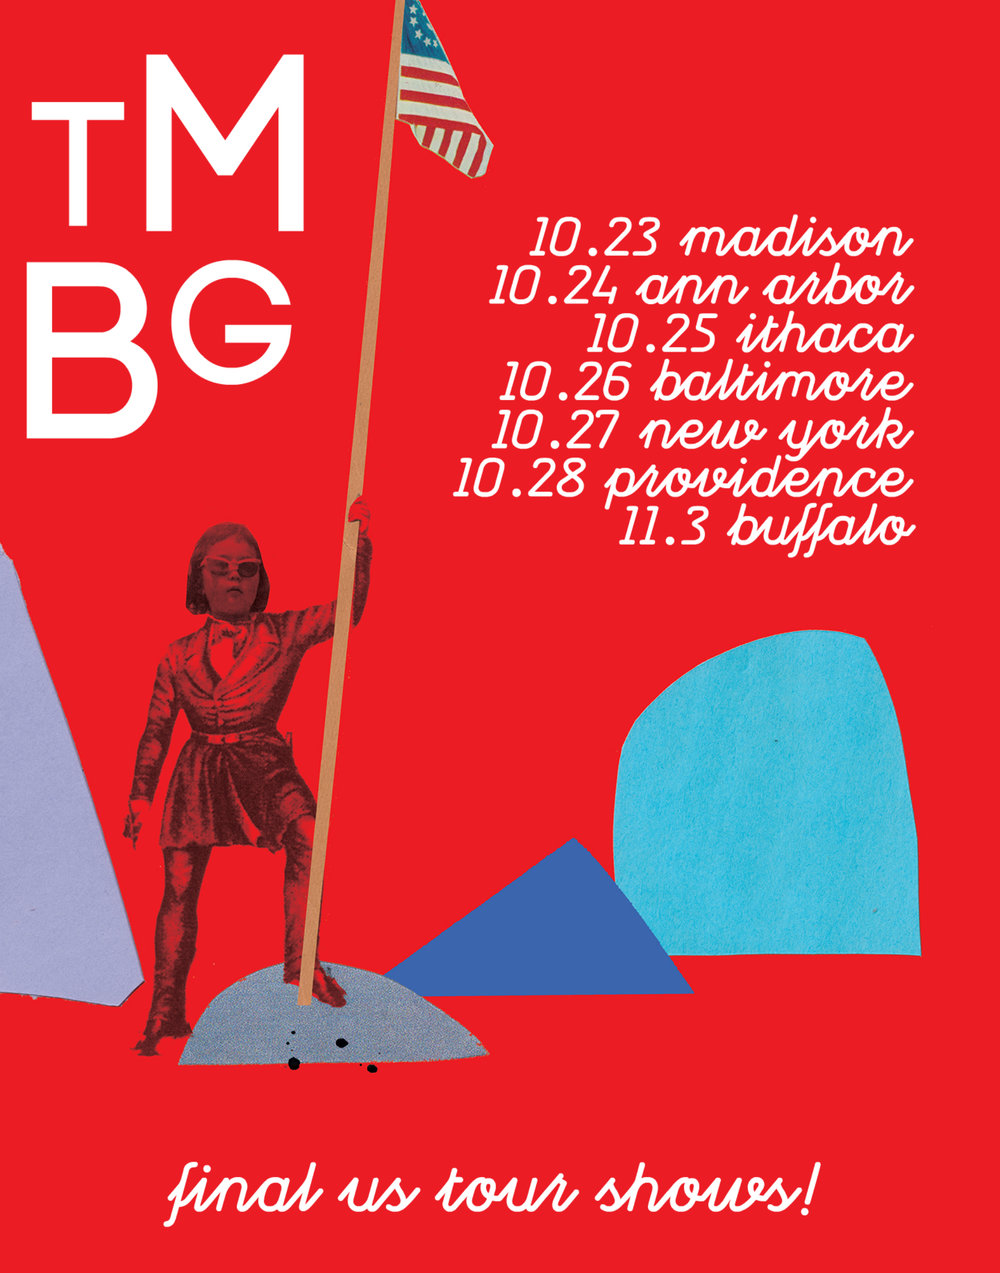 10.23 Us shows TMBG poster XII.jpg